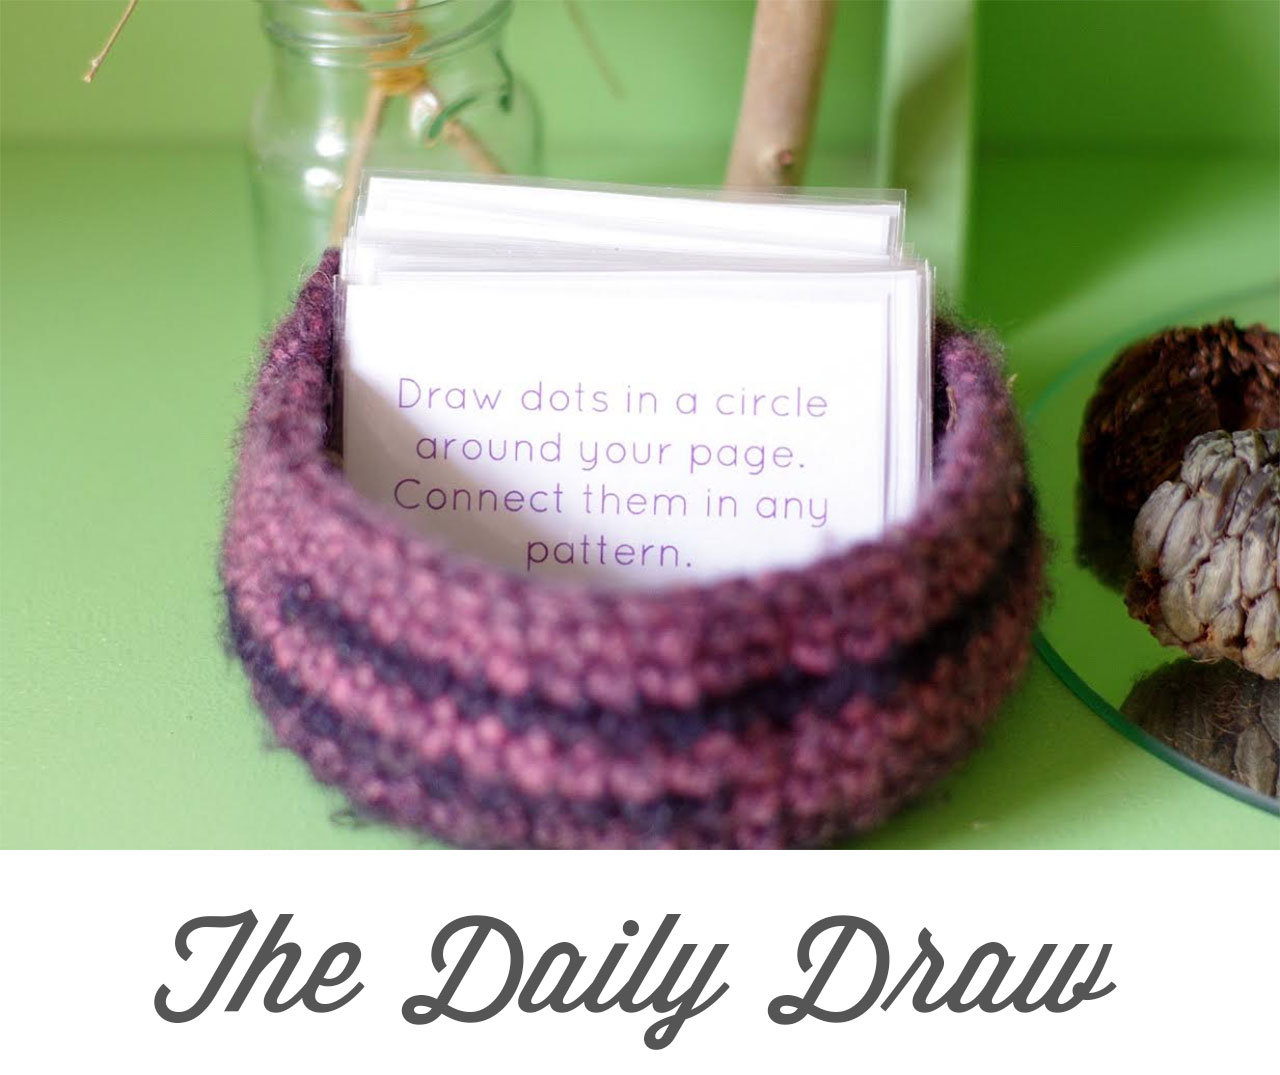 The Daily Draw